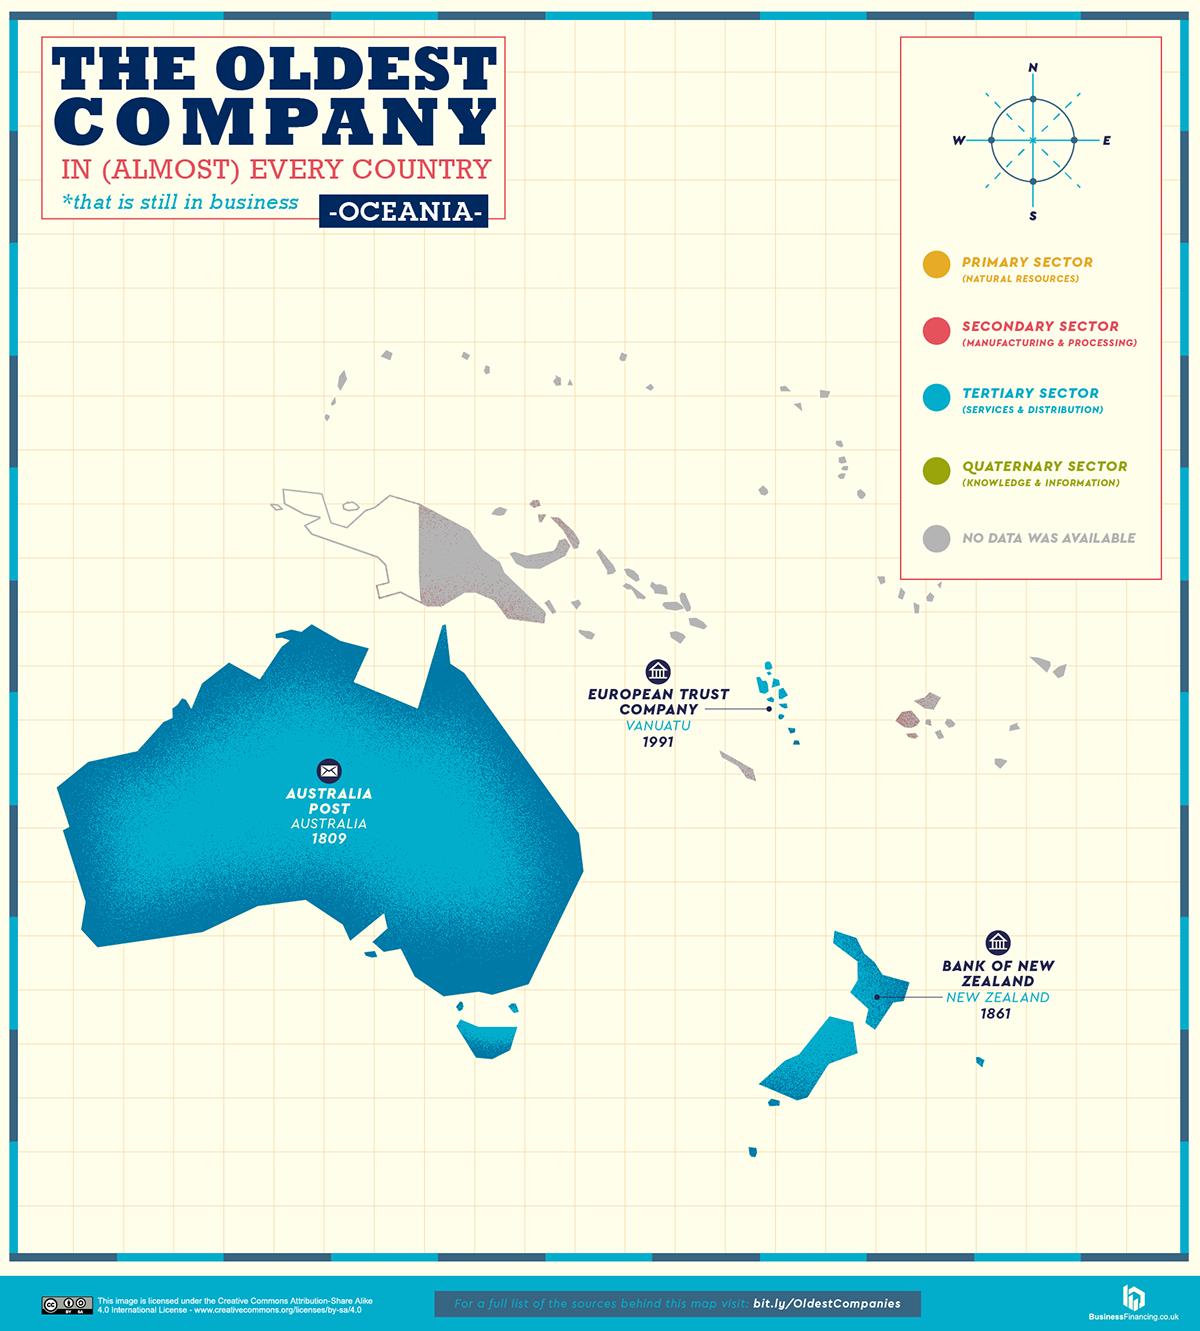 The Oldest Company in Oceania